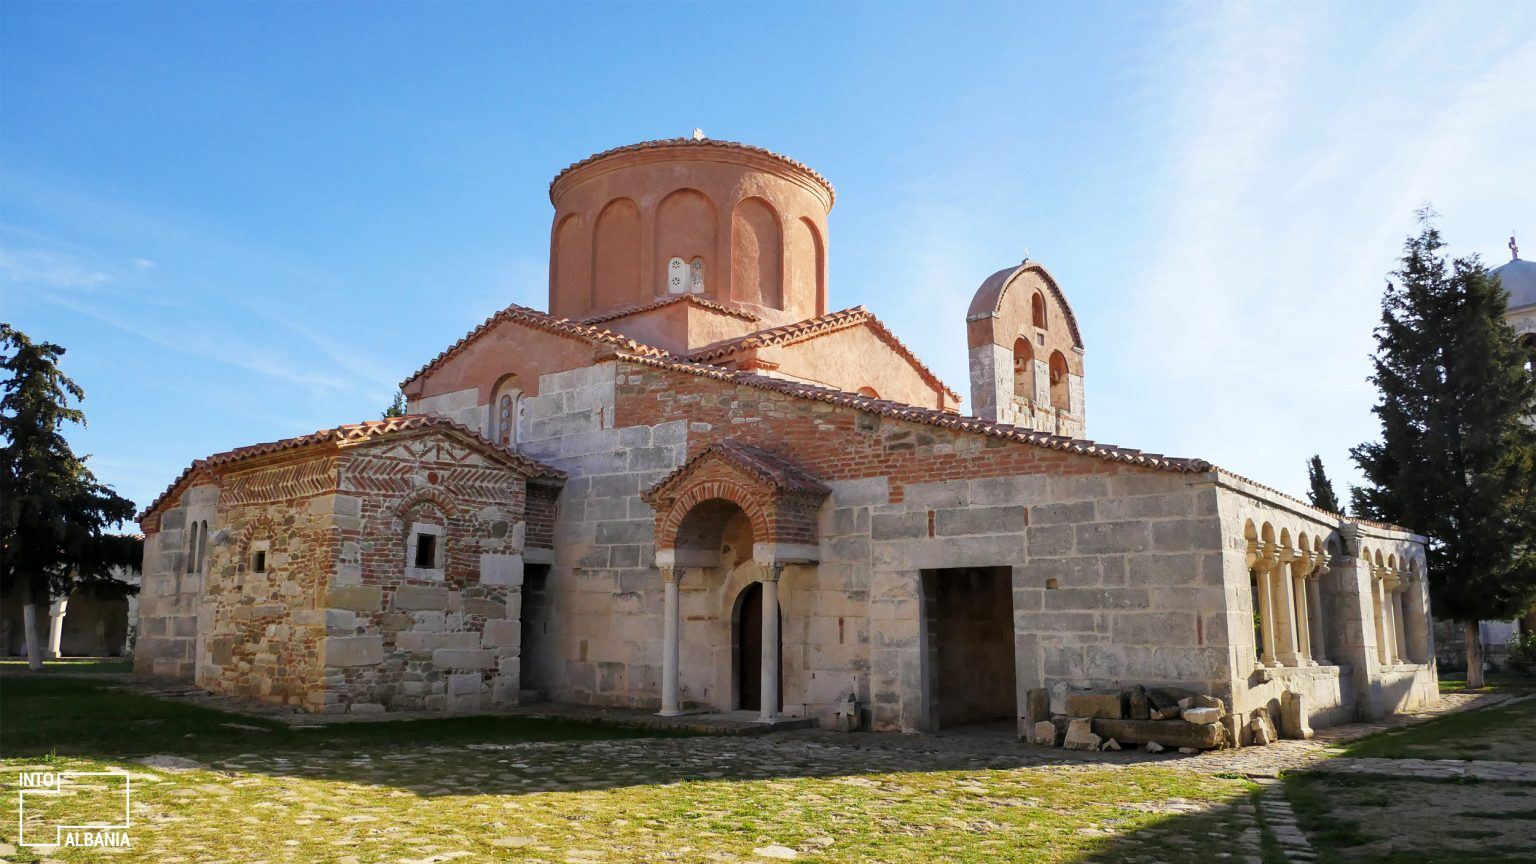 Church of St. Mary, Archeological Park of Apollonia, Fier, photo by IntoAlbania.